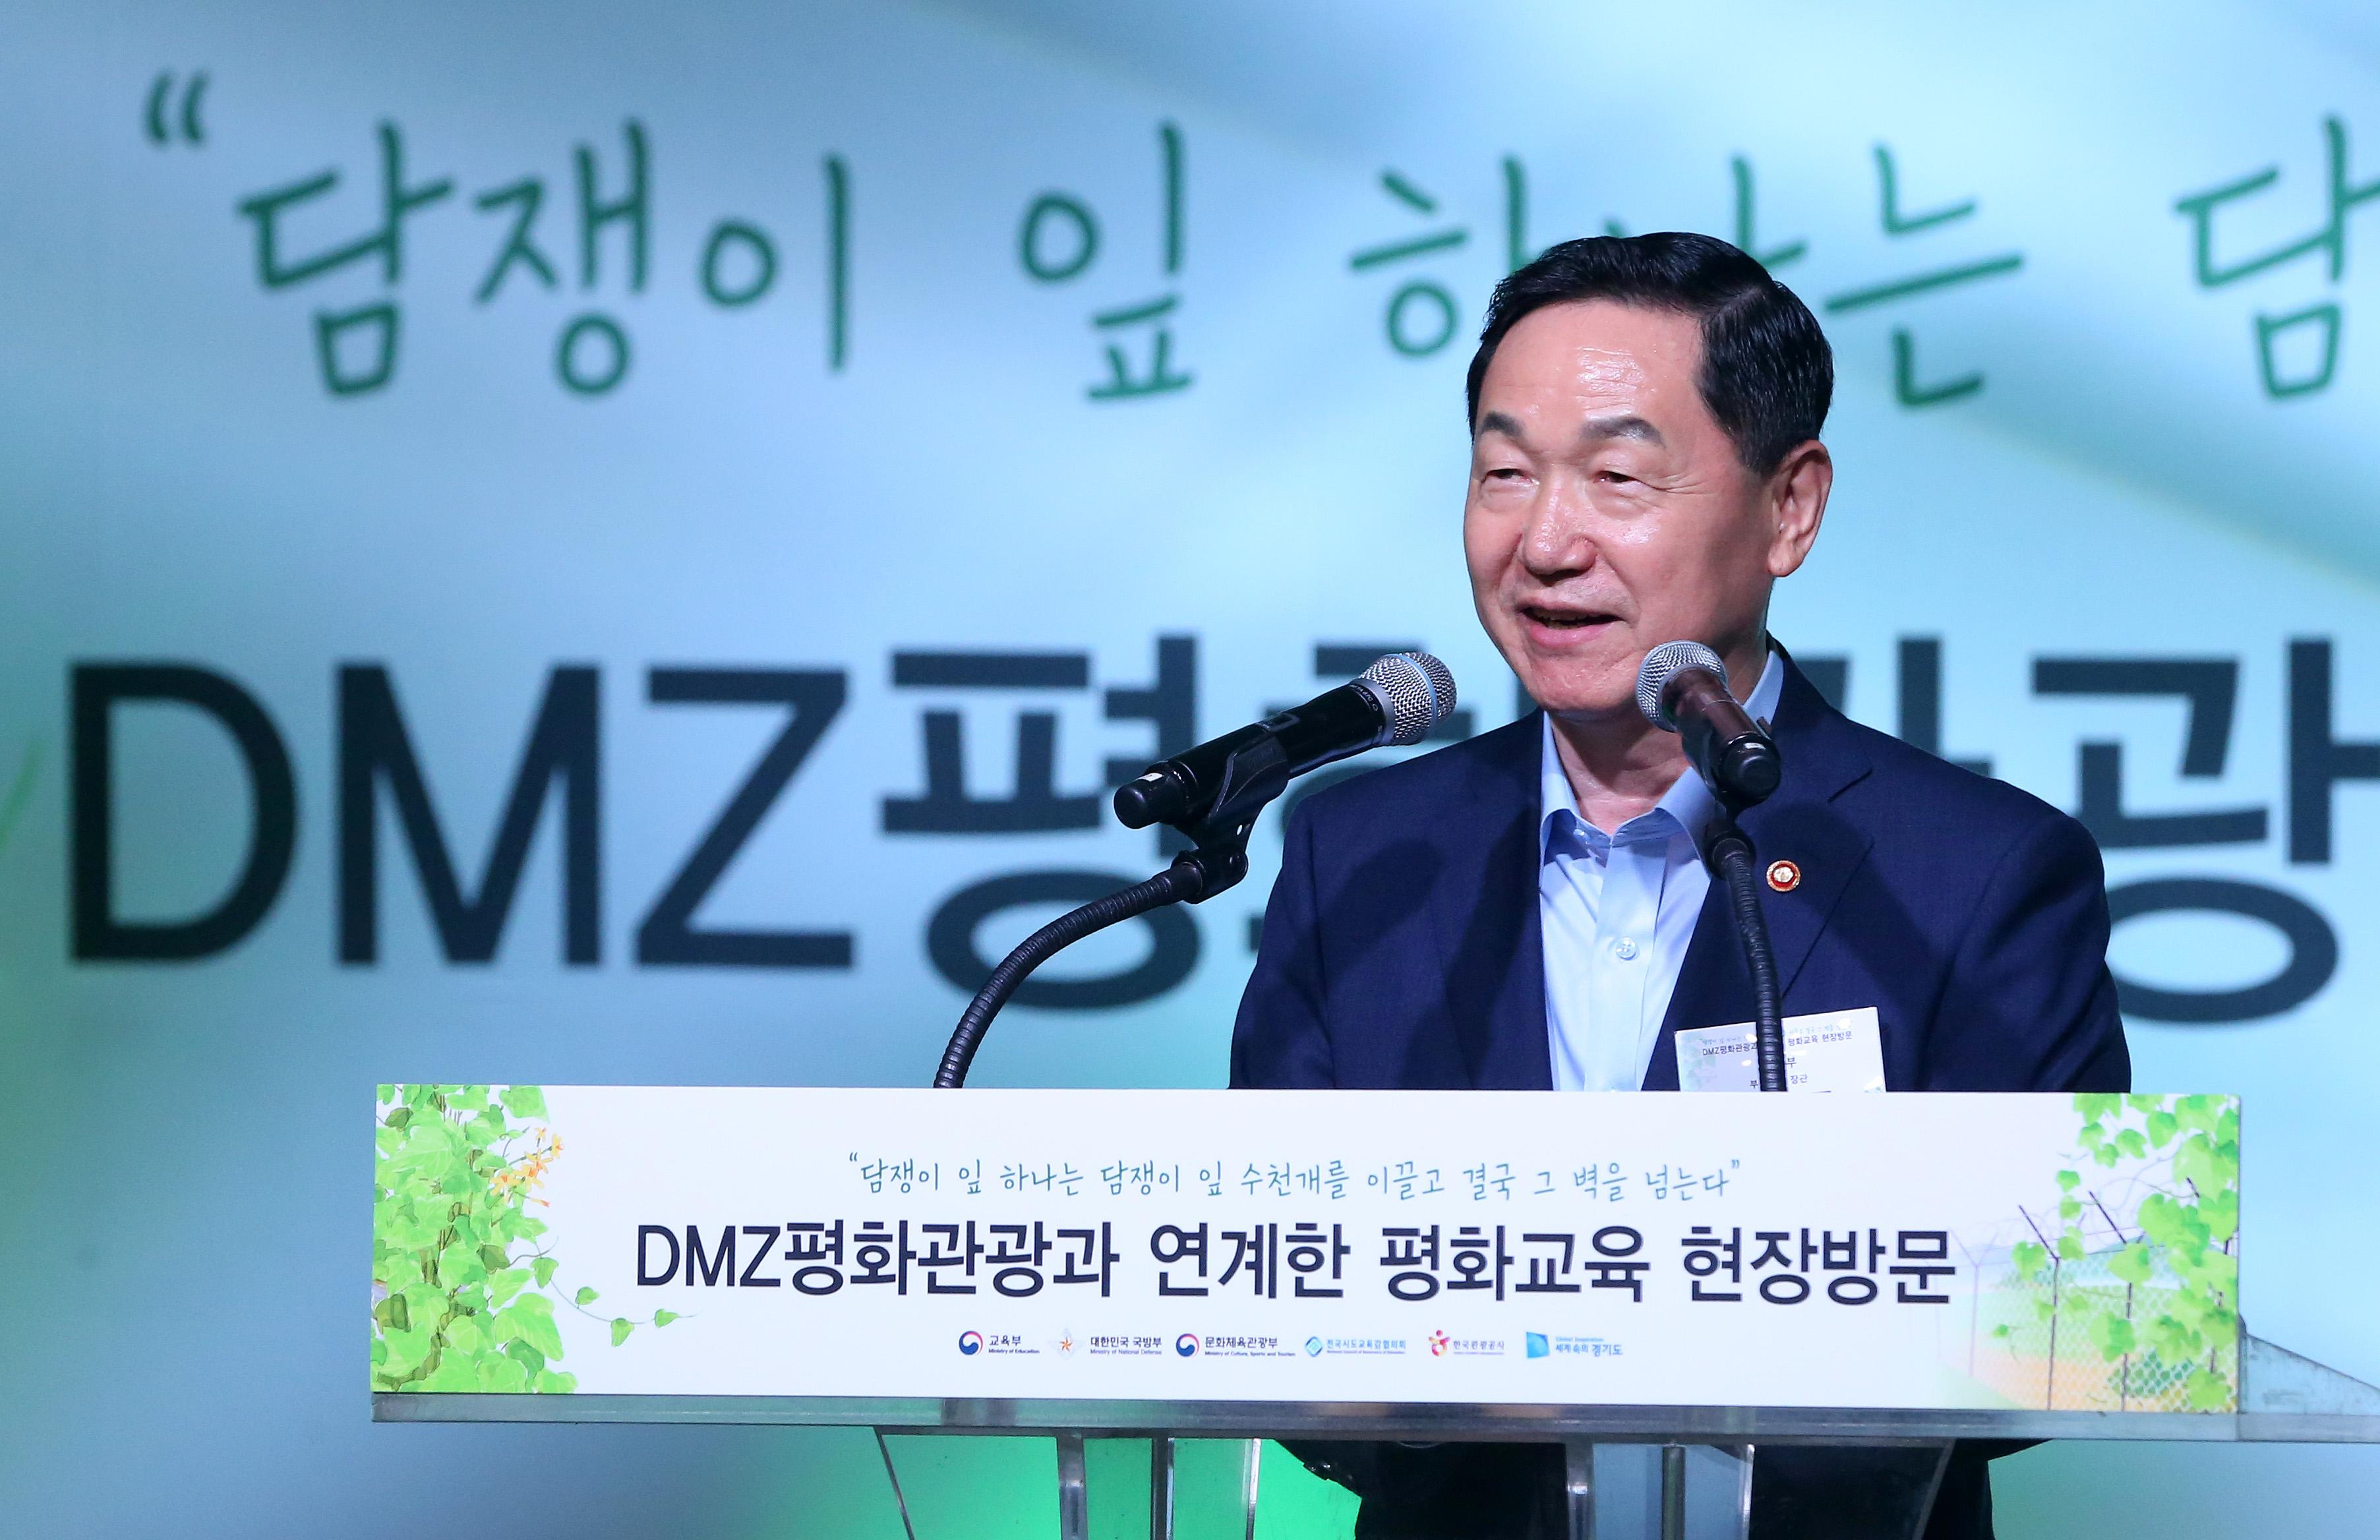 Ivy leaves climb over the DMZ wall 사진